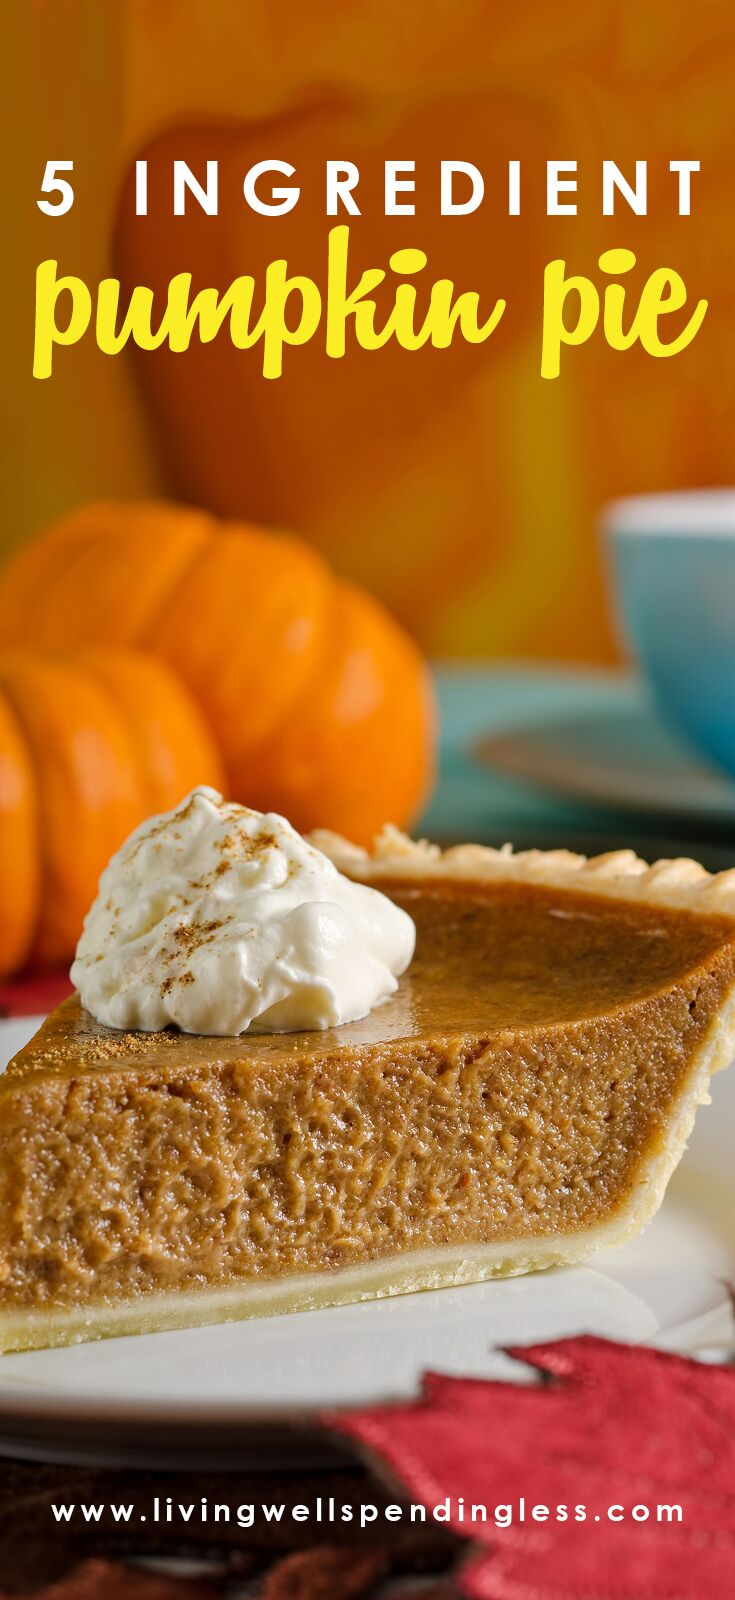 Easy 5 Ingredient Pumpkin Pie: A Simple Holiday Dessert Recipe